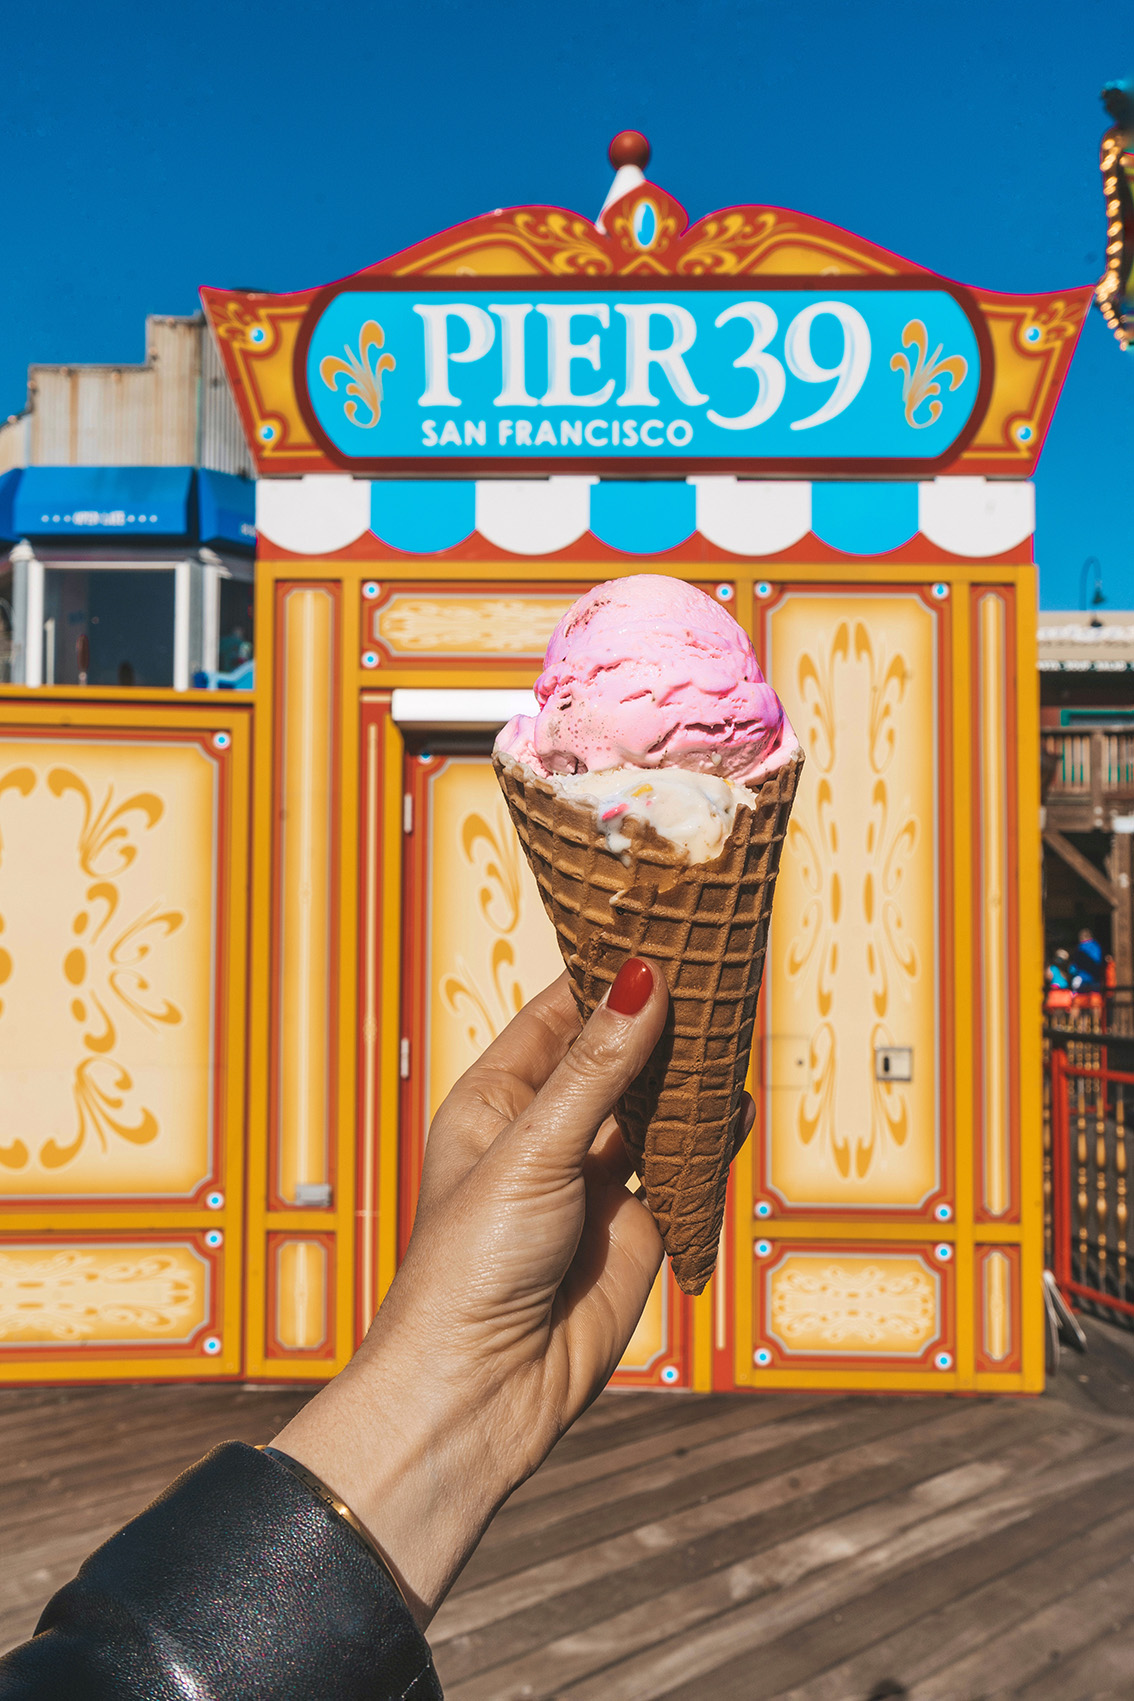 25 10 most instagrammable places in San Francisco you don't have to miss!